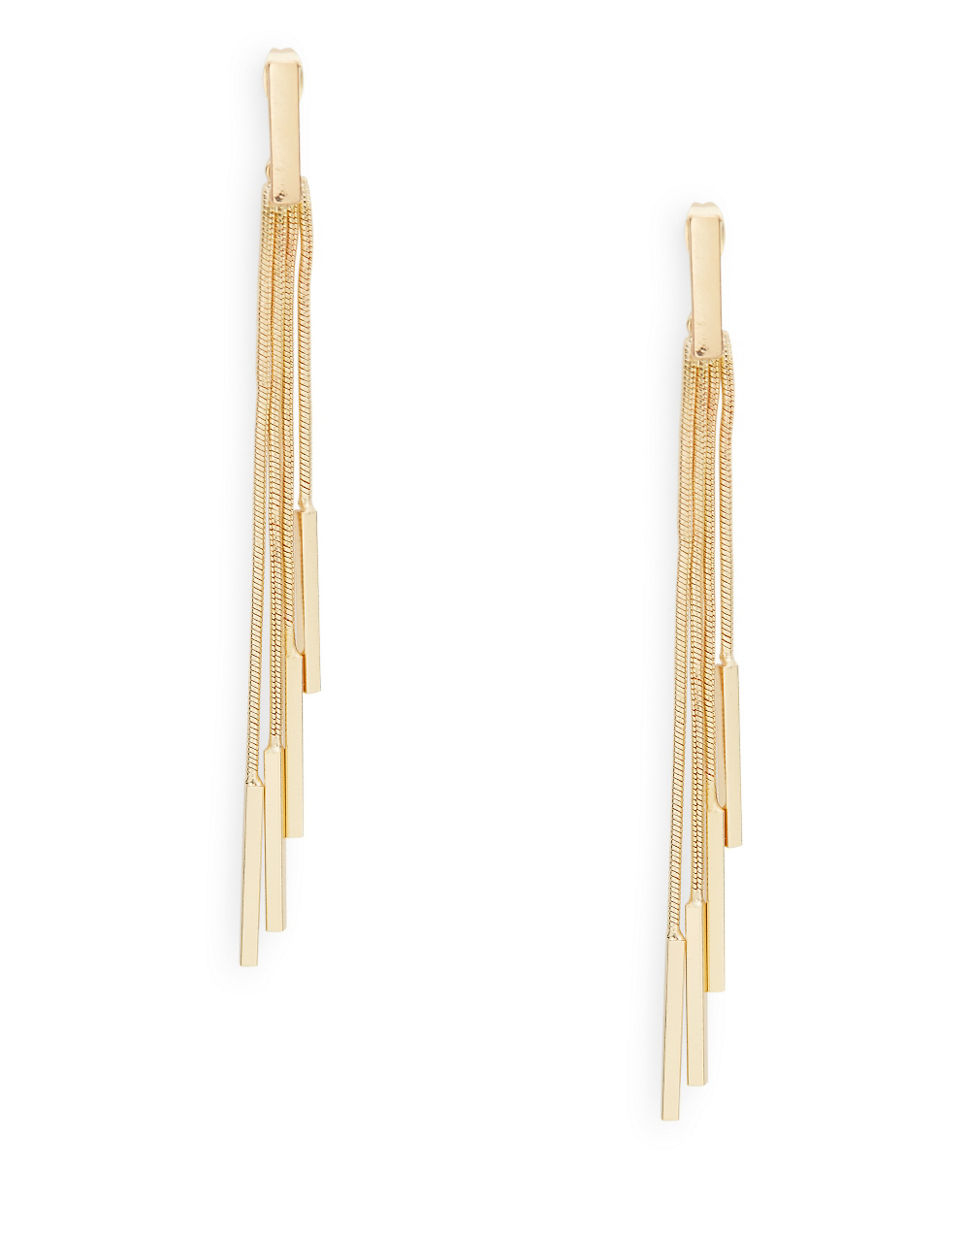 6706298389 moreover 5689092712 together with Society Of Automotive Historians likewise 1777 Bamboo Whistle Set besides 1. on oscar meyer whistles